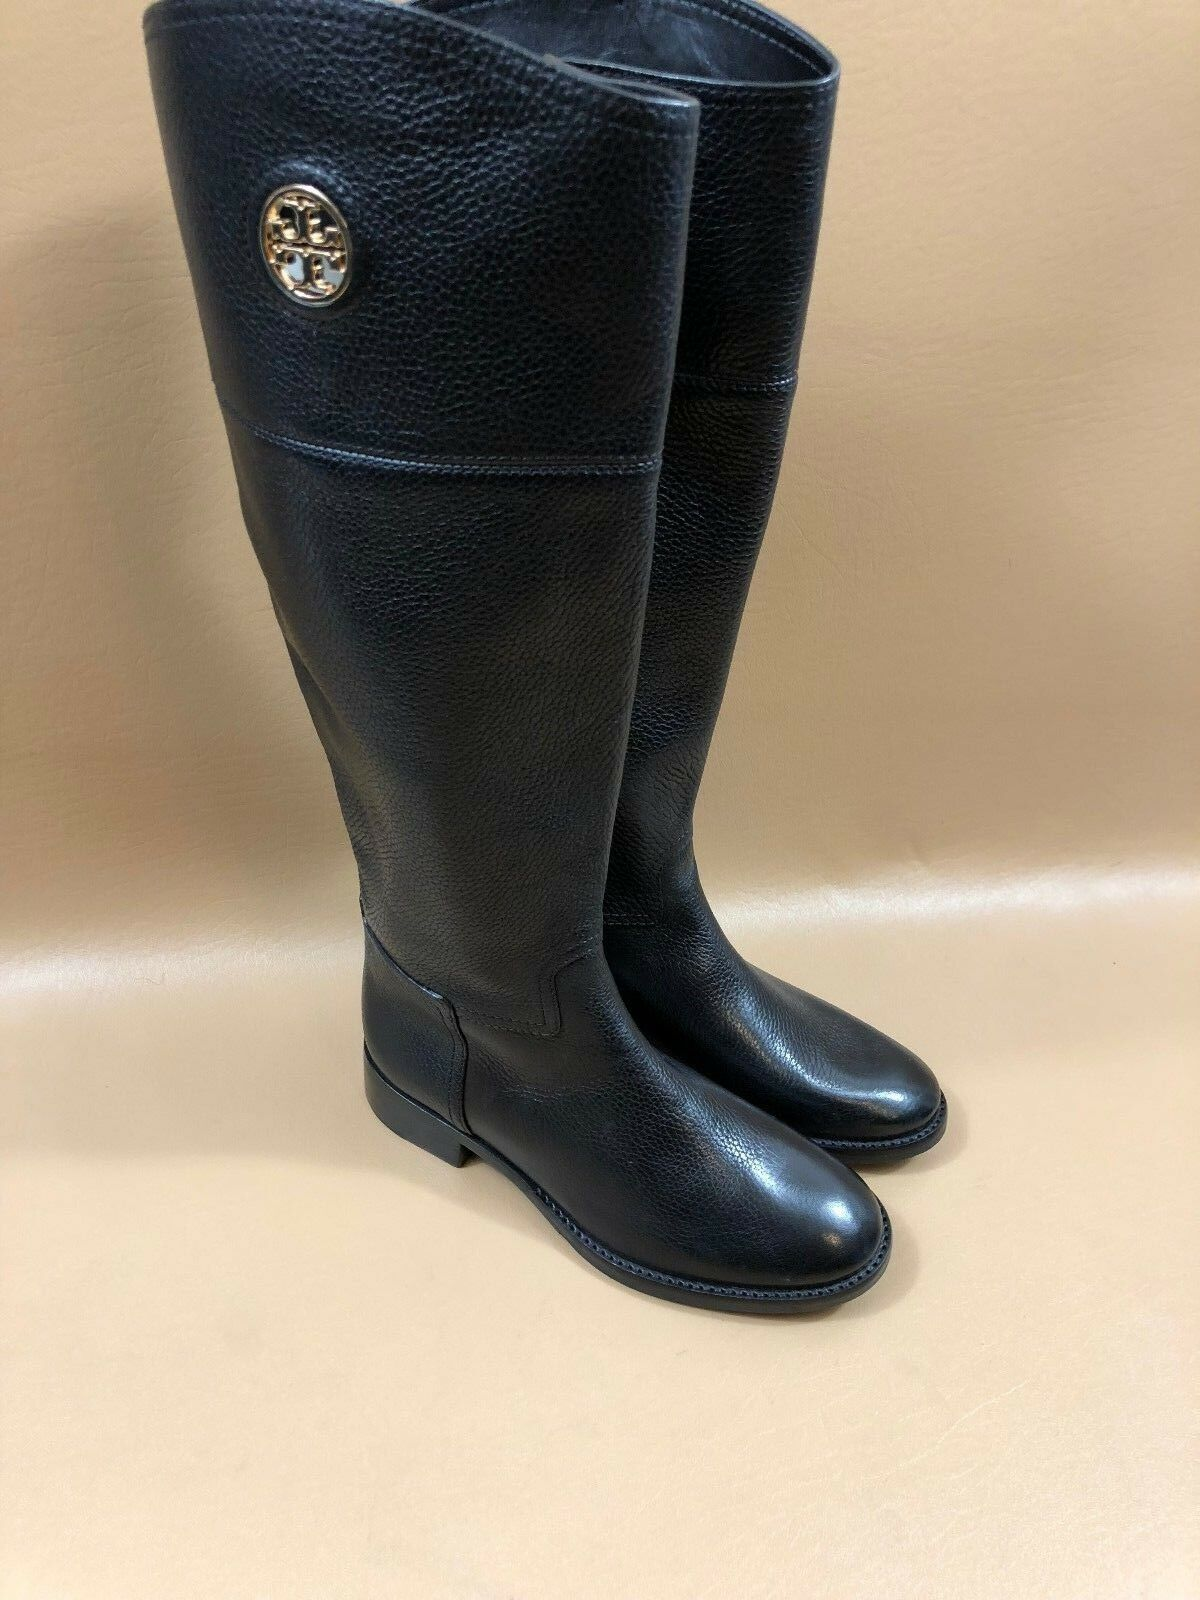 88 Tory Burch Black Logo Plate Riding Boots Size 5.5 M